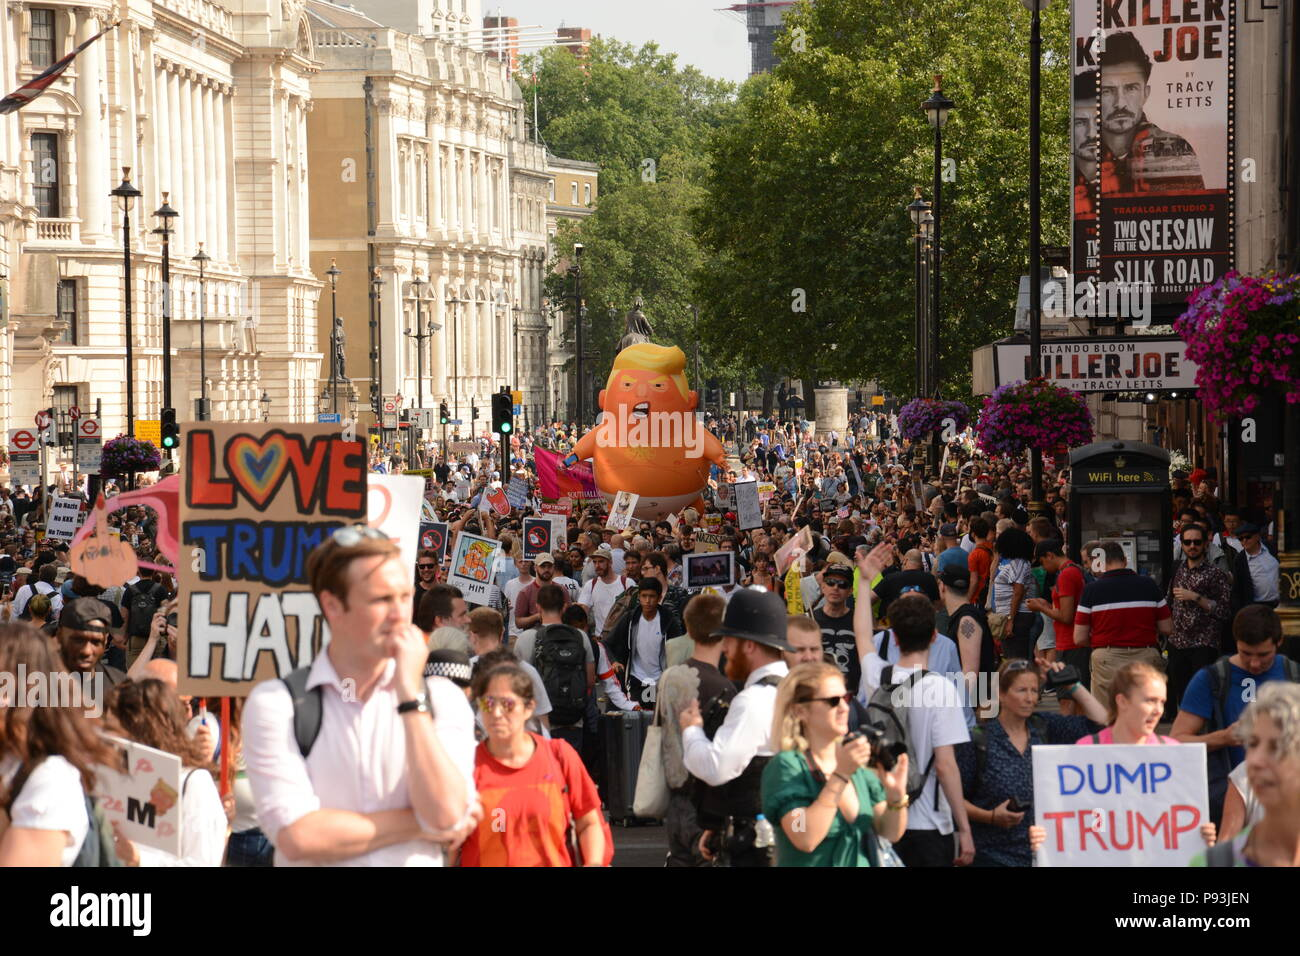 Anti-Trump March in Central London 13th July 2018 - Stock Image